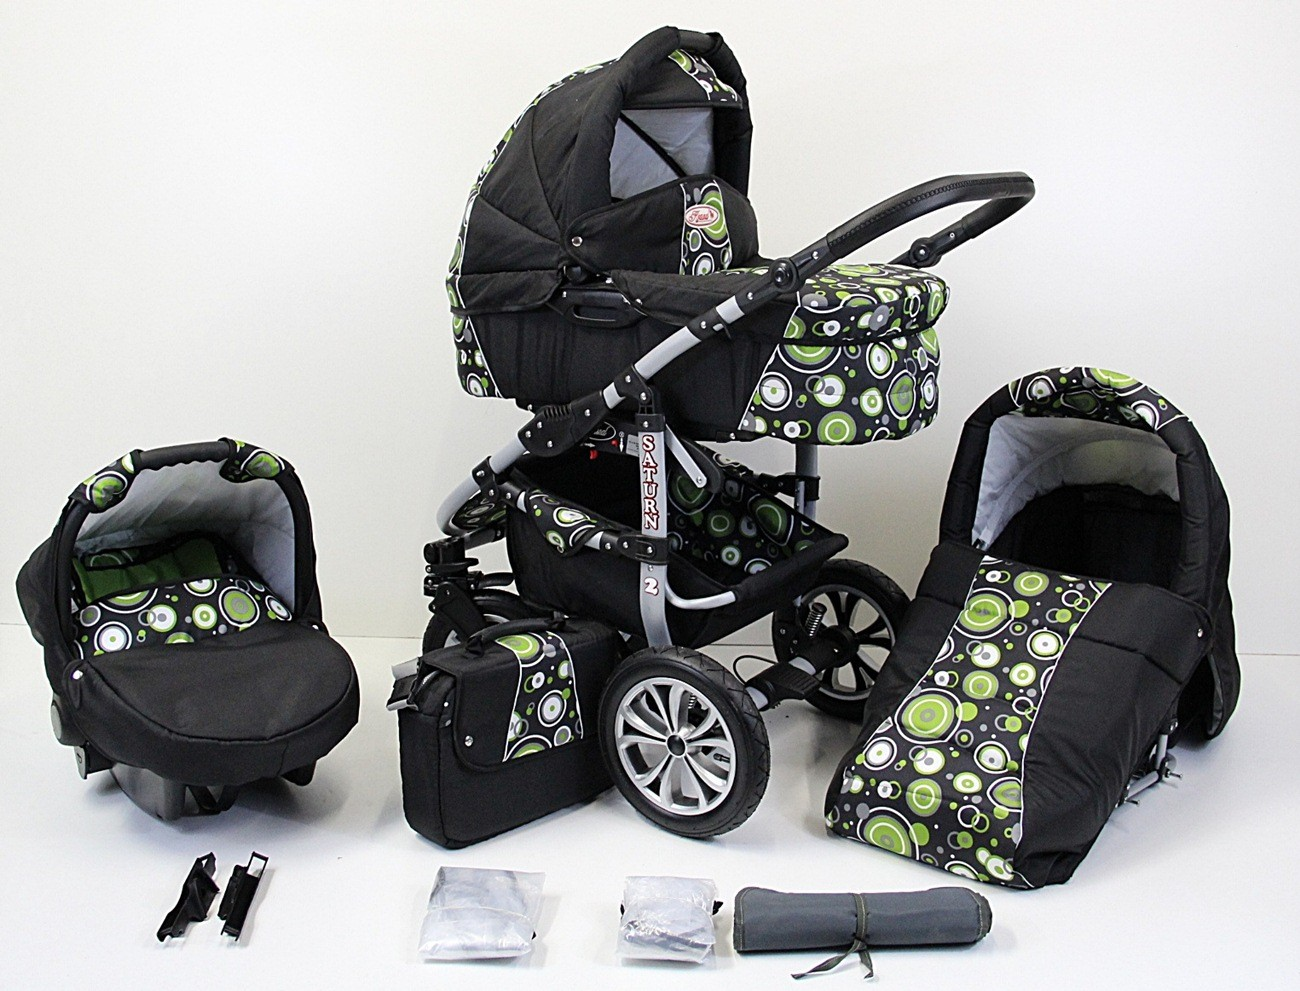 saturn2 kinderwagen 3in1 mit babyschale kombikinderwagen poussette pram neu ebay. Black Bedroom Furniture Sets. Home Design Ideas